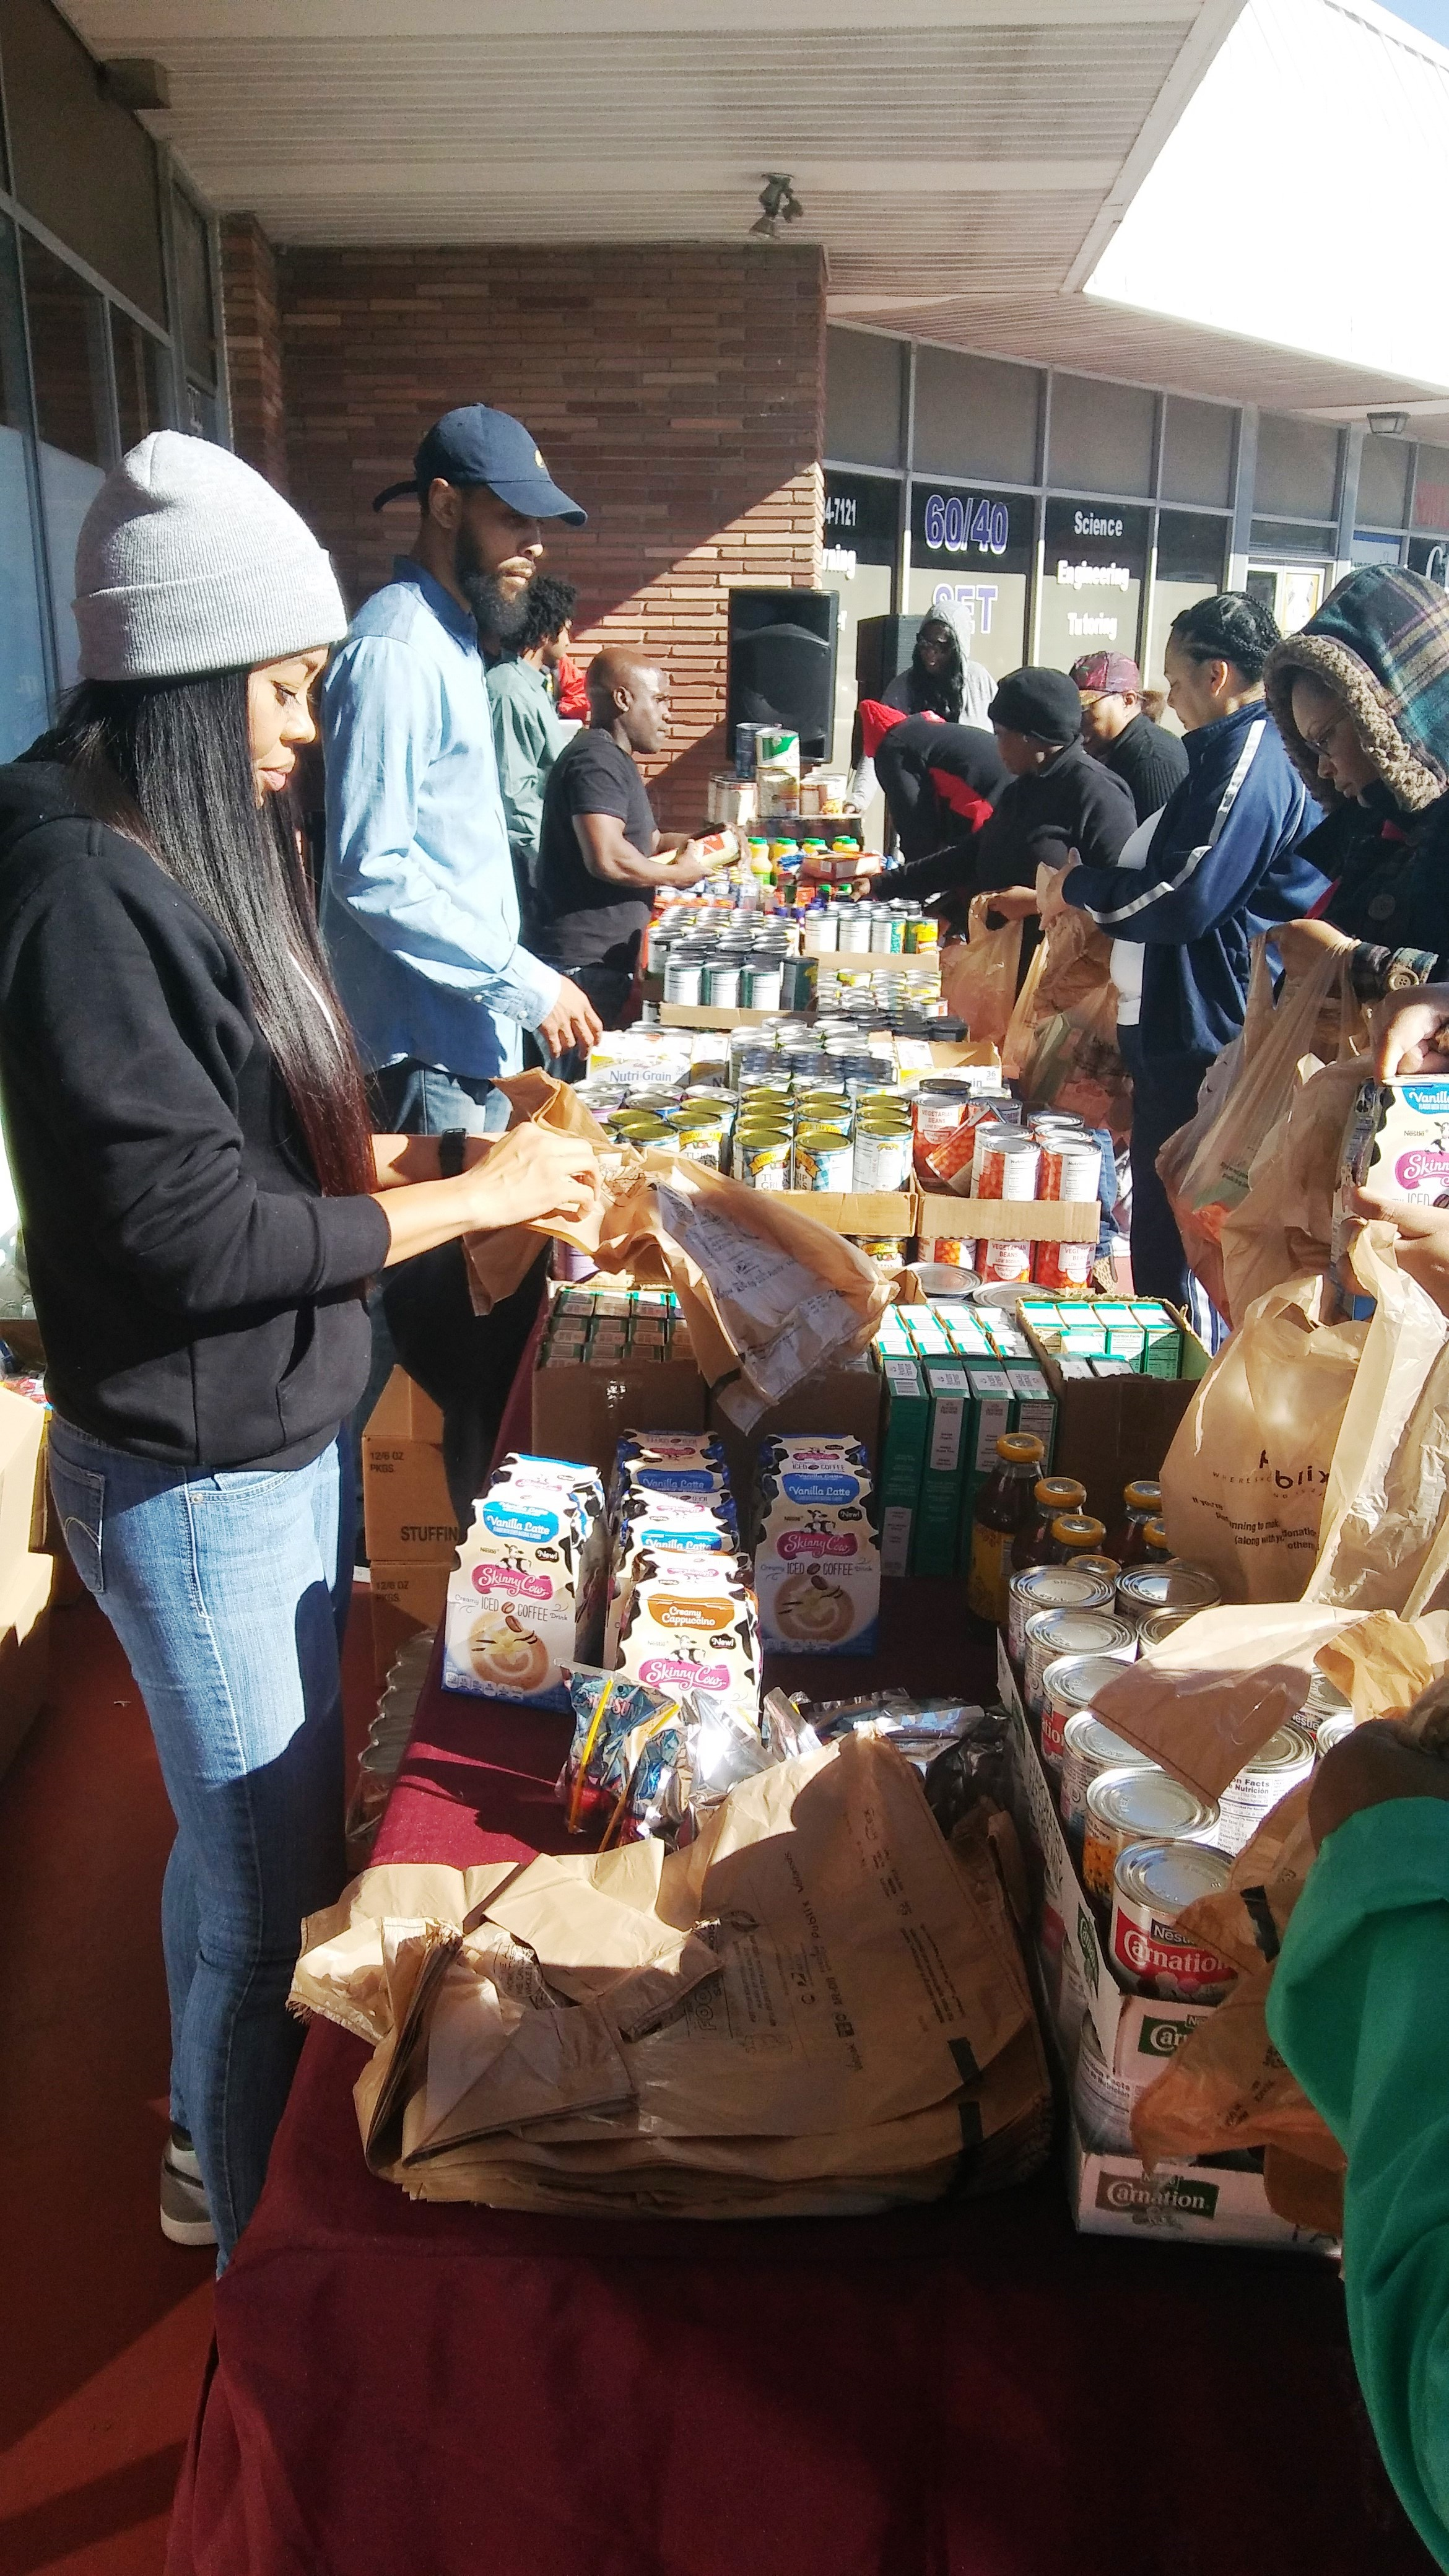 reec-host-grocery-give-away-payusa-11-20-5